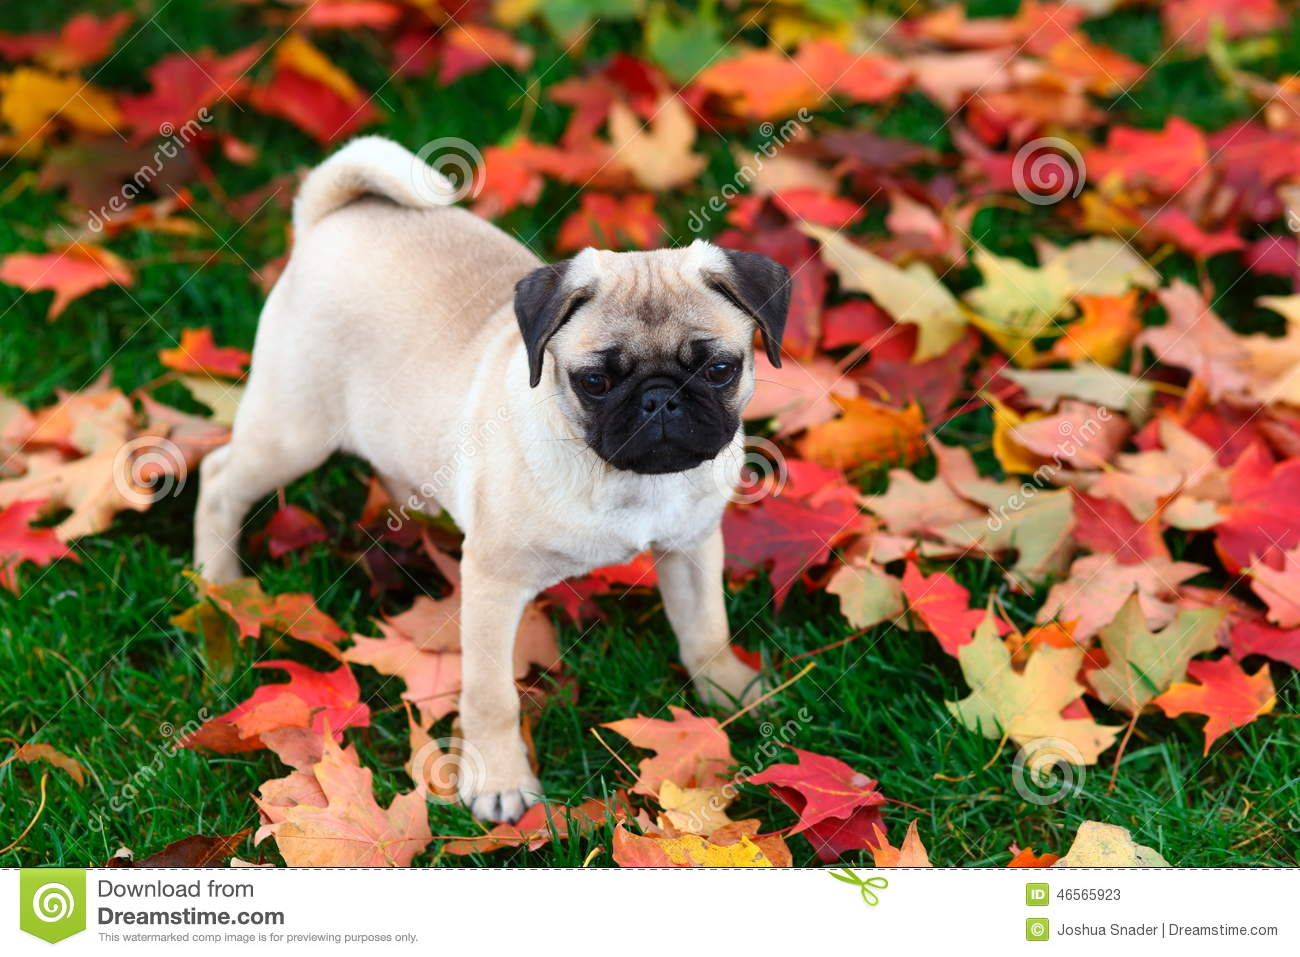 Free Fall Puppy Wallpaper Pug Puppy Standing In Colorful Autumn Leaves In Green